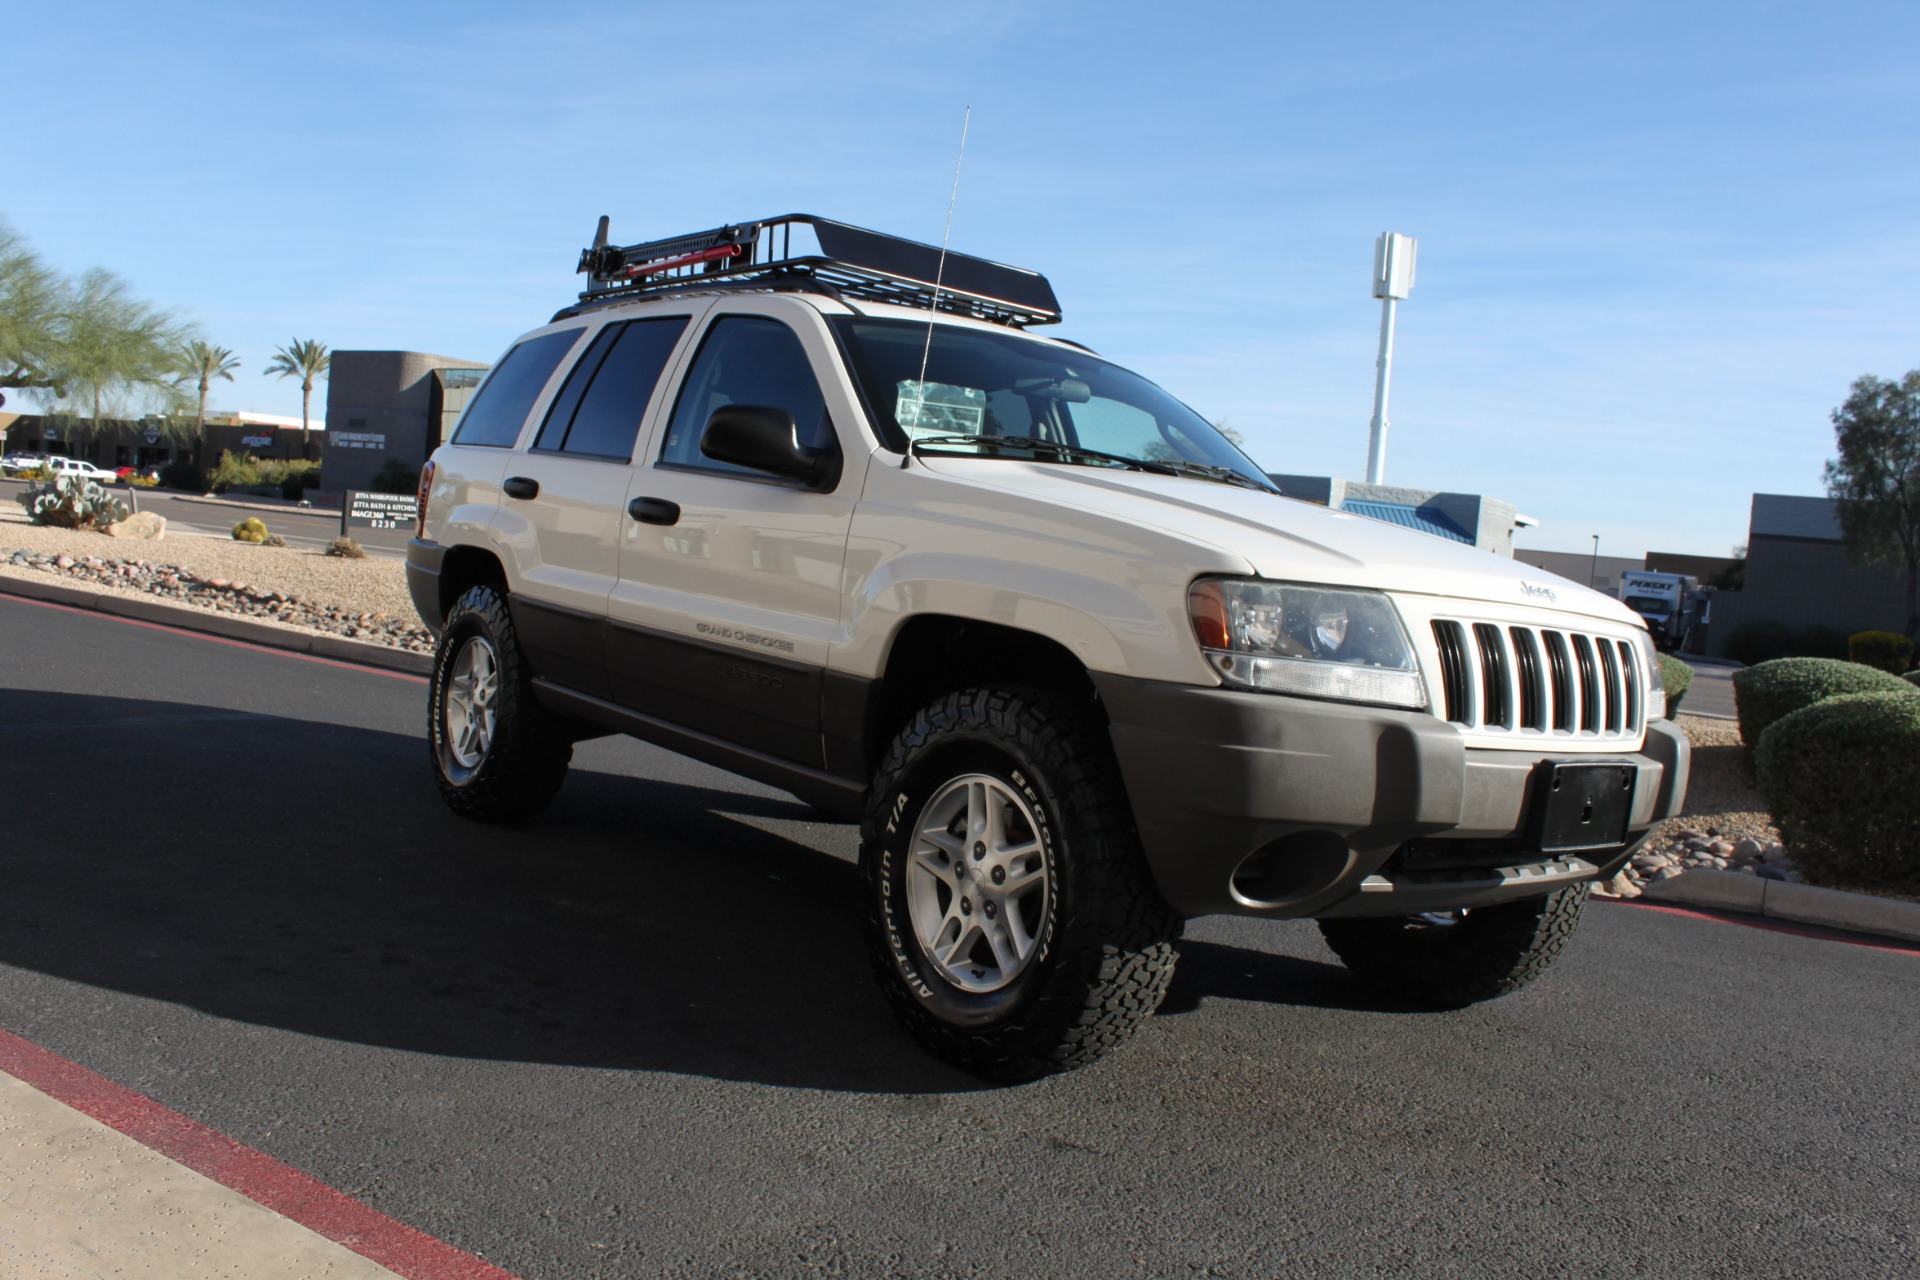 Used-2004-Jeep-Grand-Cherokee-Laredo-Fiat